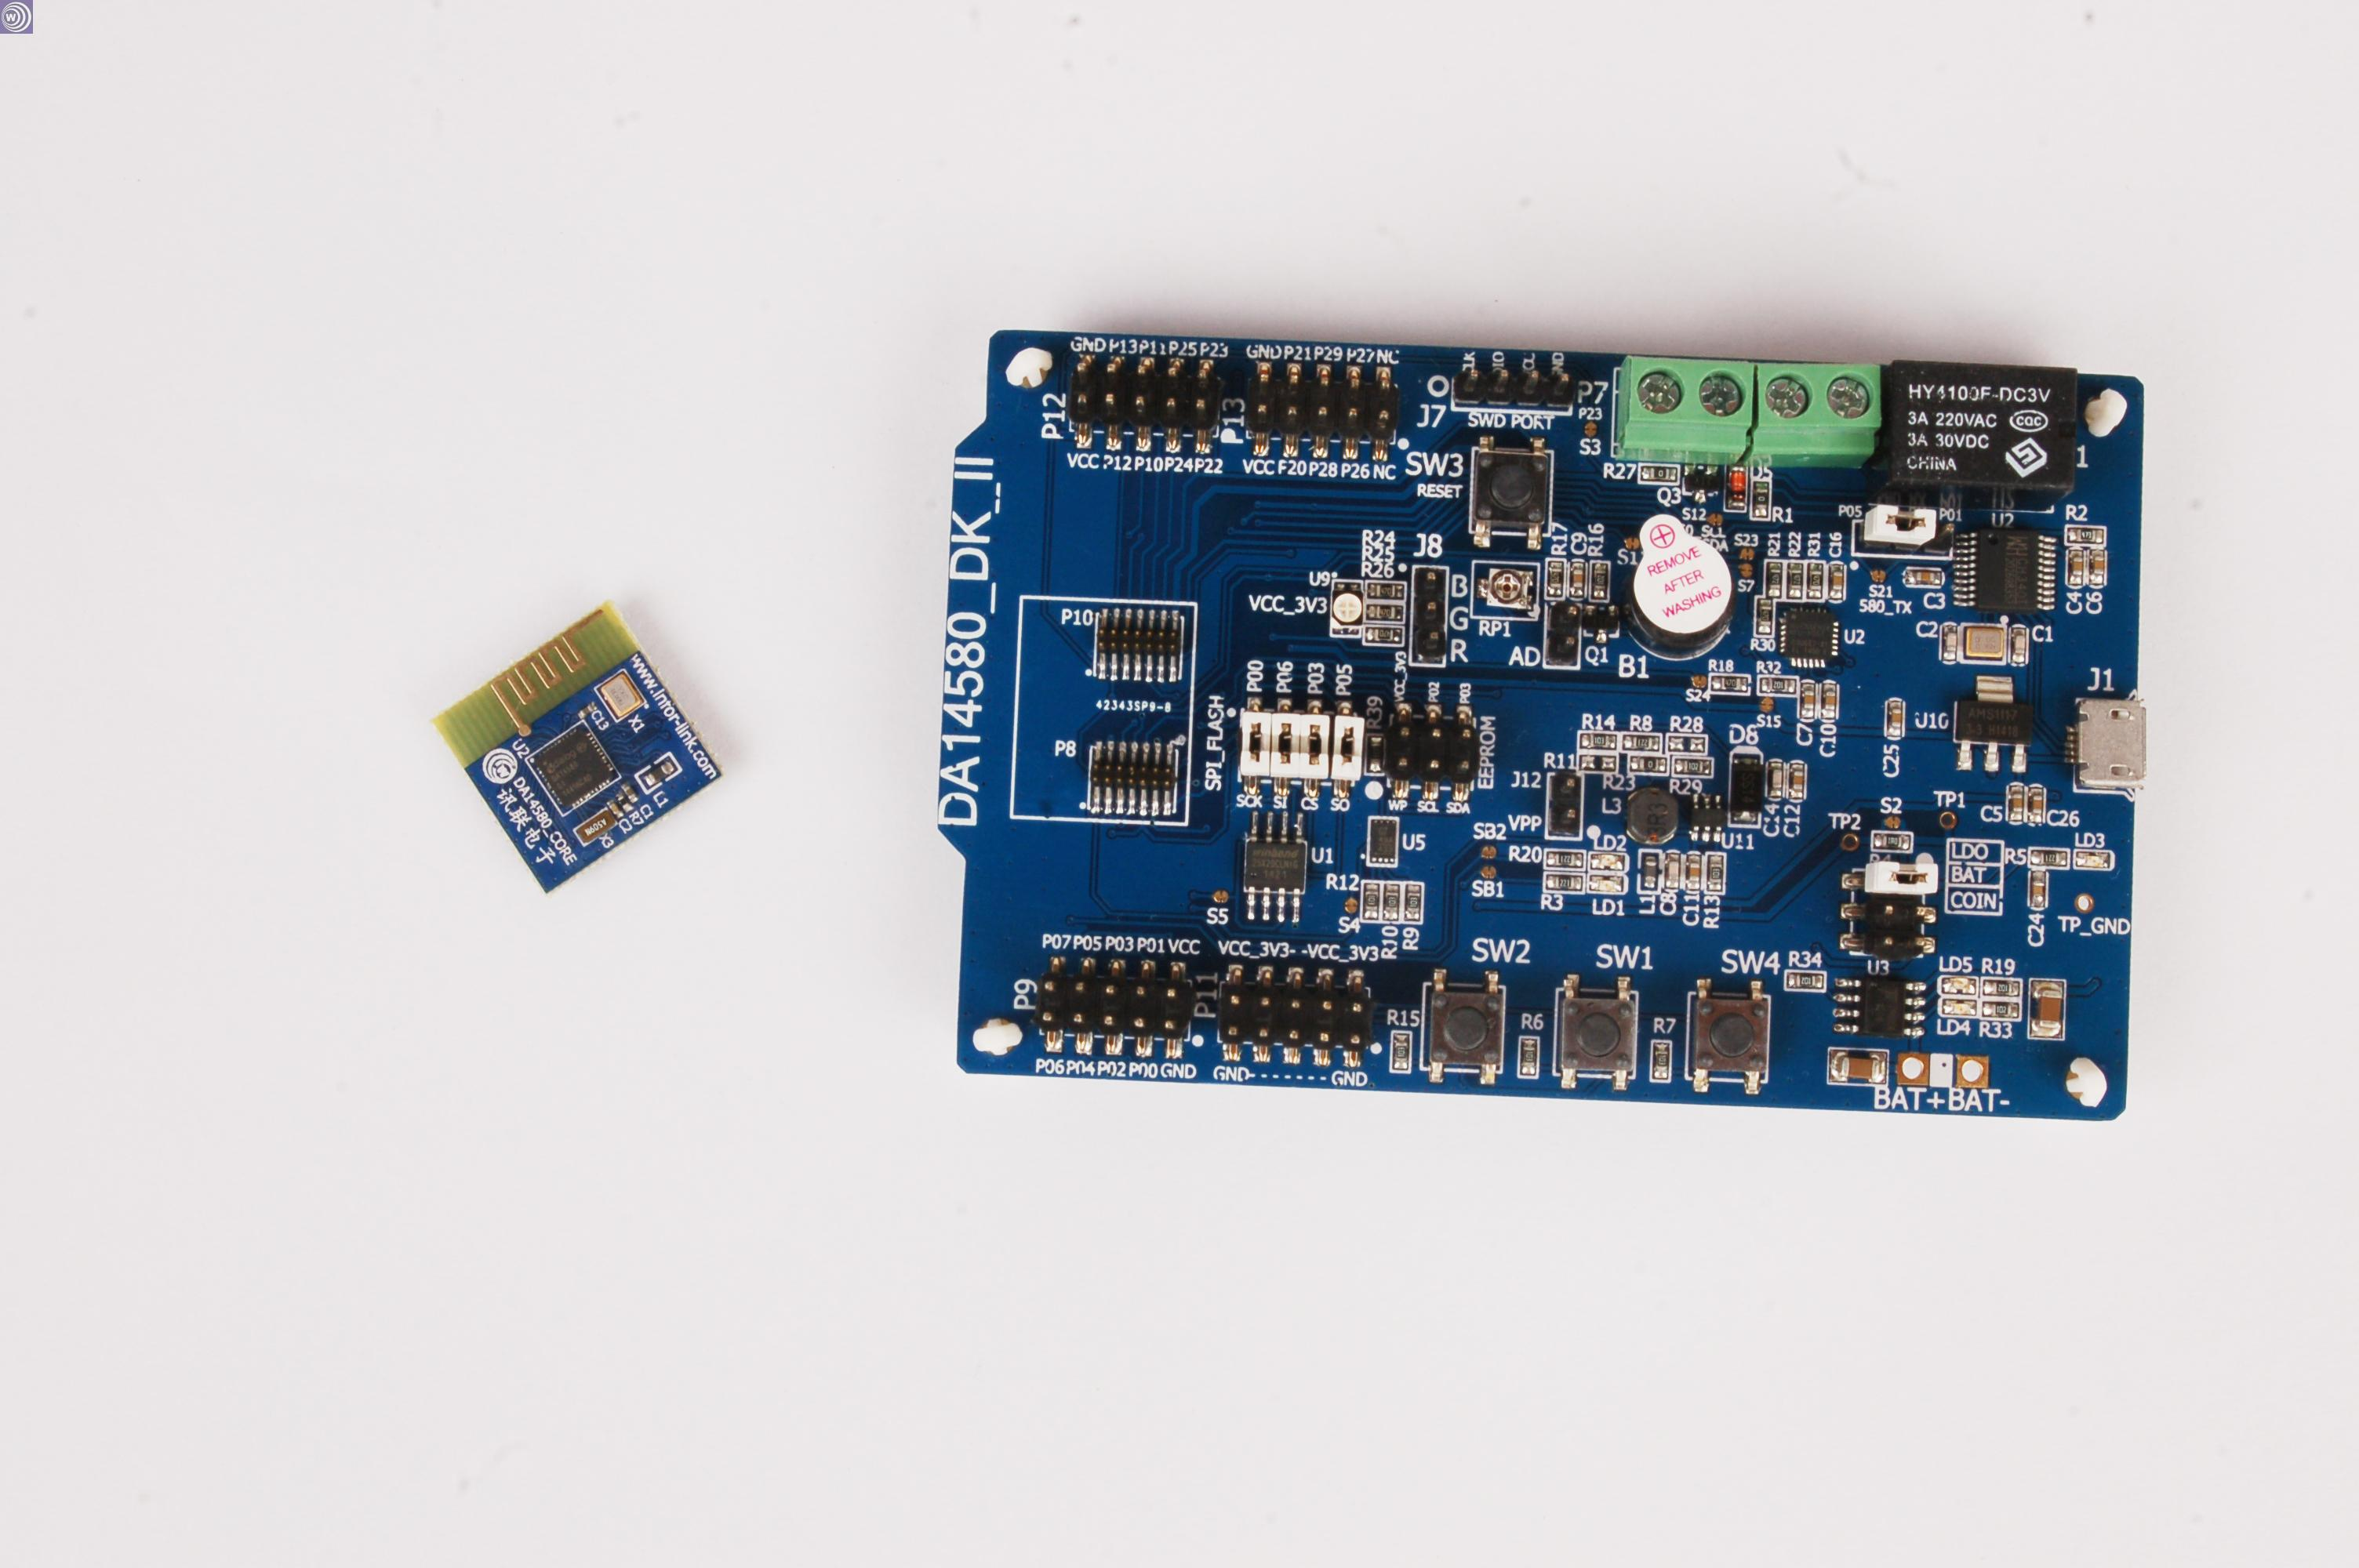 The industry's lowest power consumption Bluetooth 4.0BLE development board DA14583DK_II chip FLASH hot da14580 ak bluetooth ble development board ibeacon millet bracelet lis3dh power industry